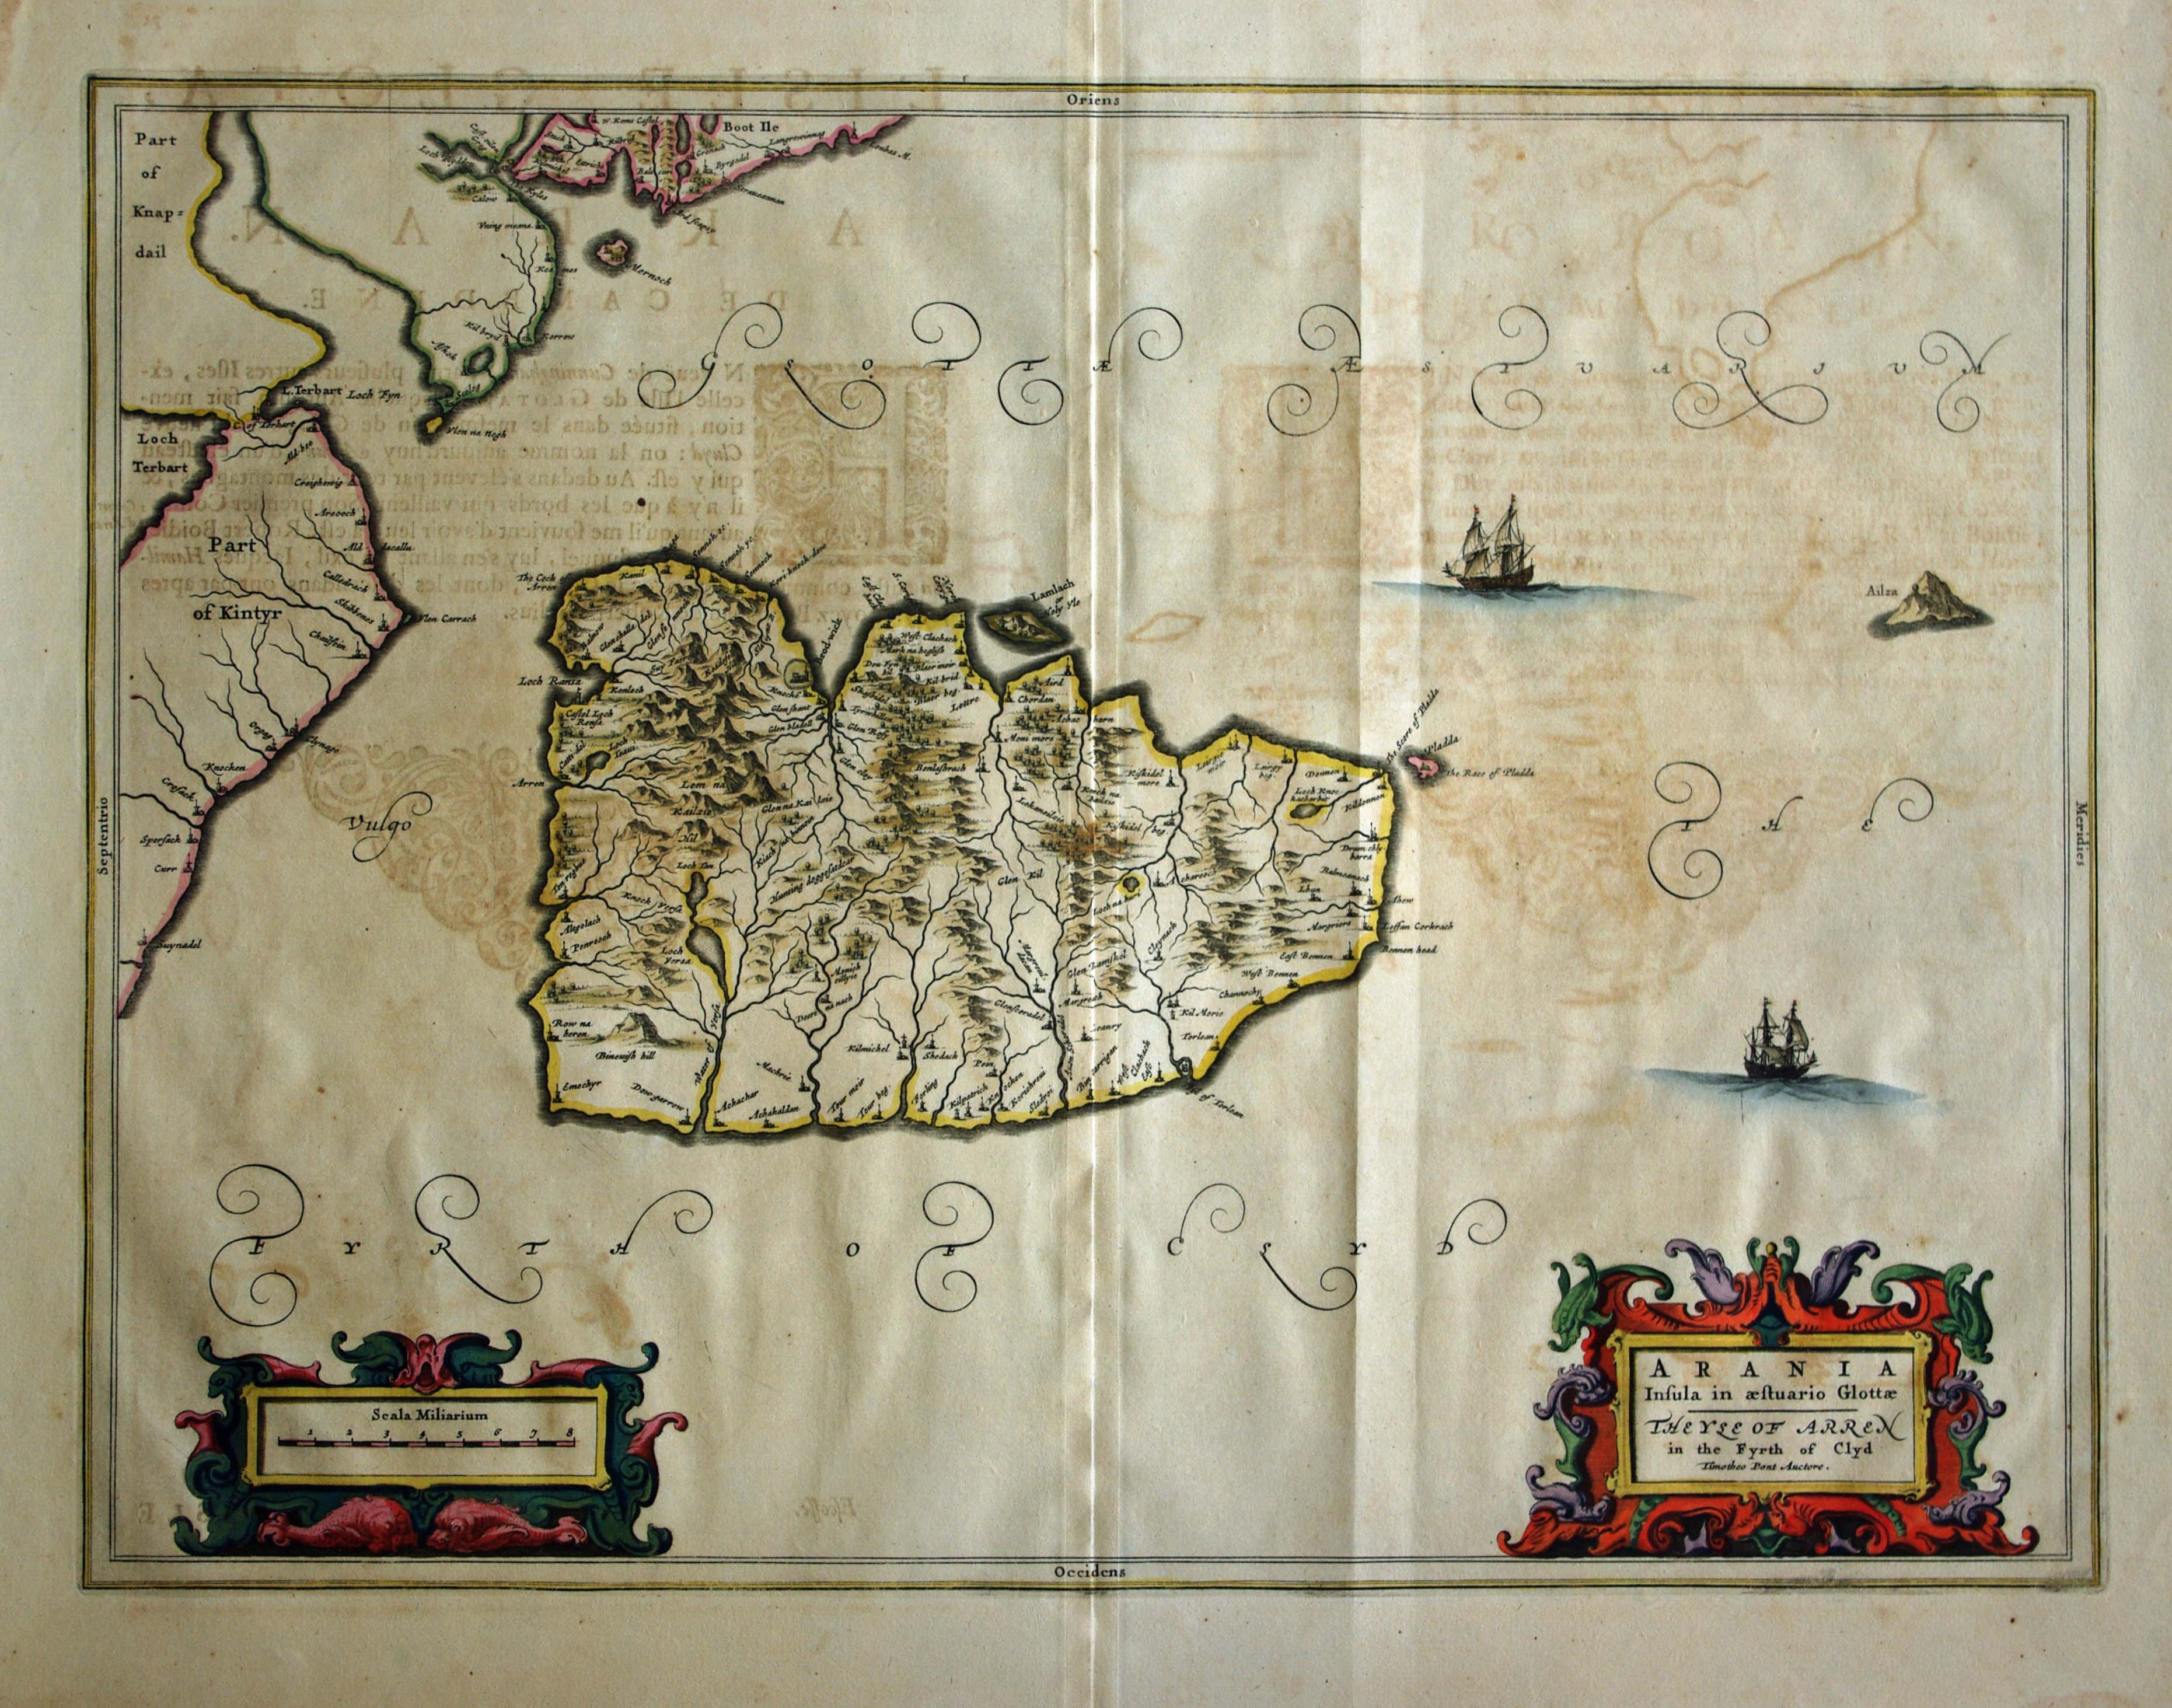 Blaeu's Arran, click for full res image